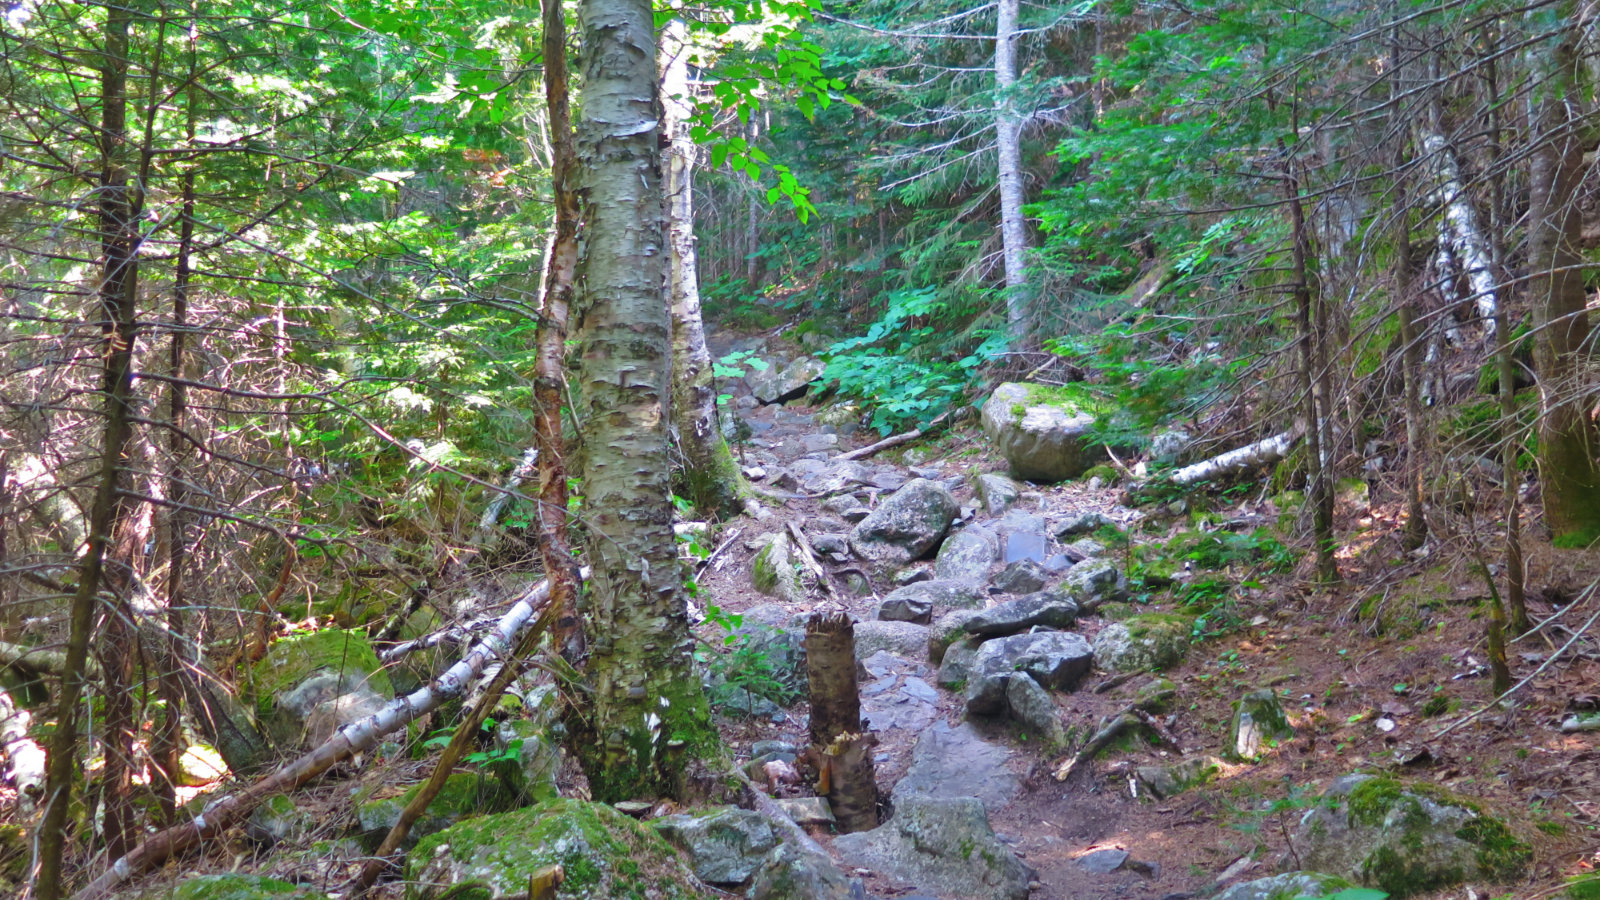 Rough_Trail_Carrigain_20190803